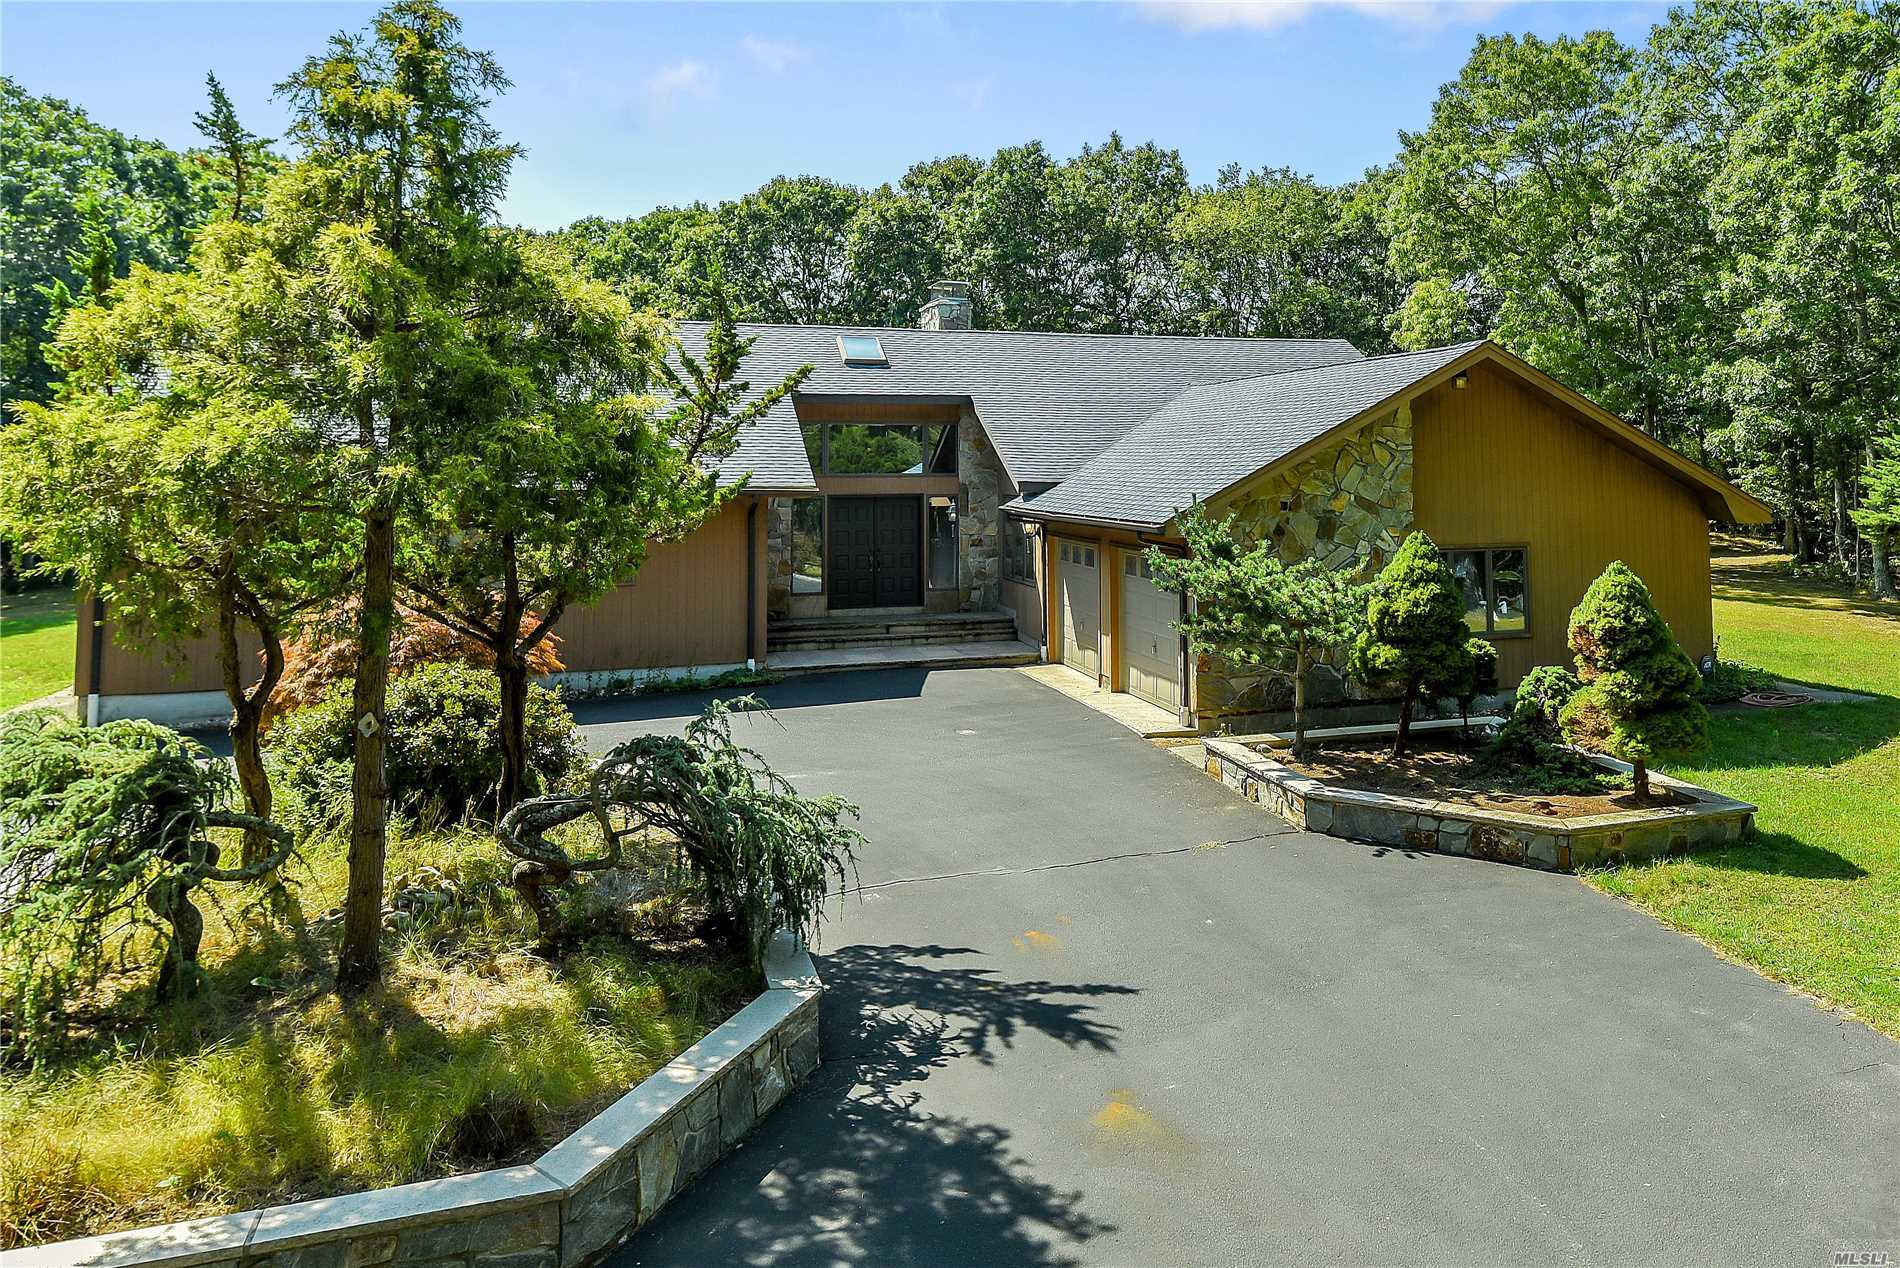 2905 Private Rd - East Marion, New York